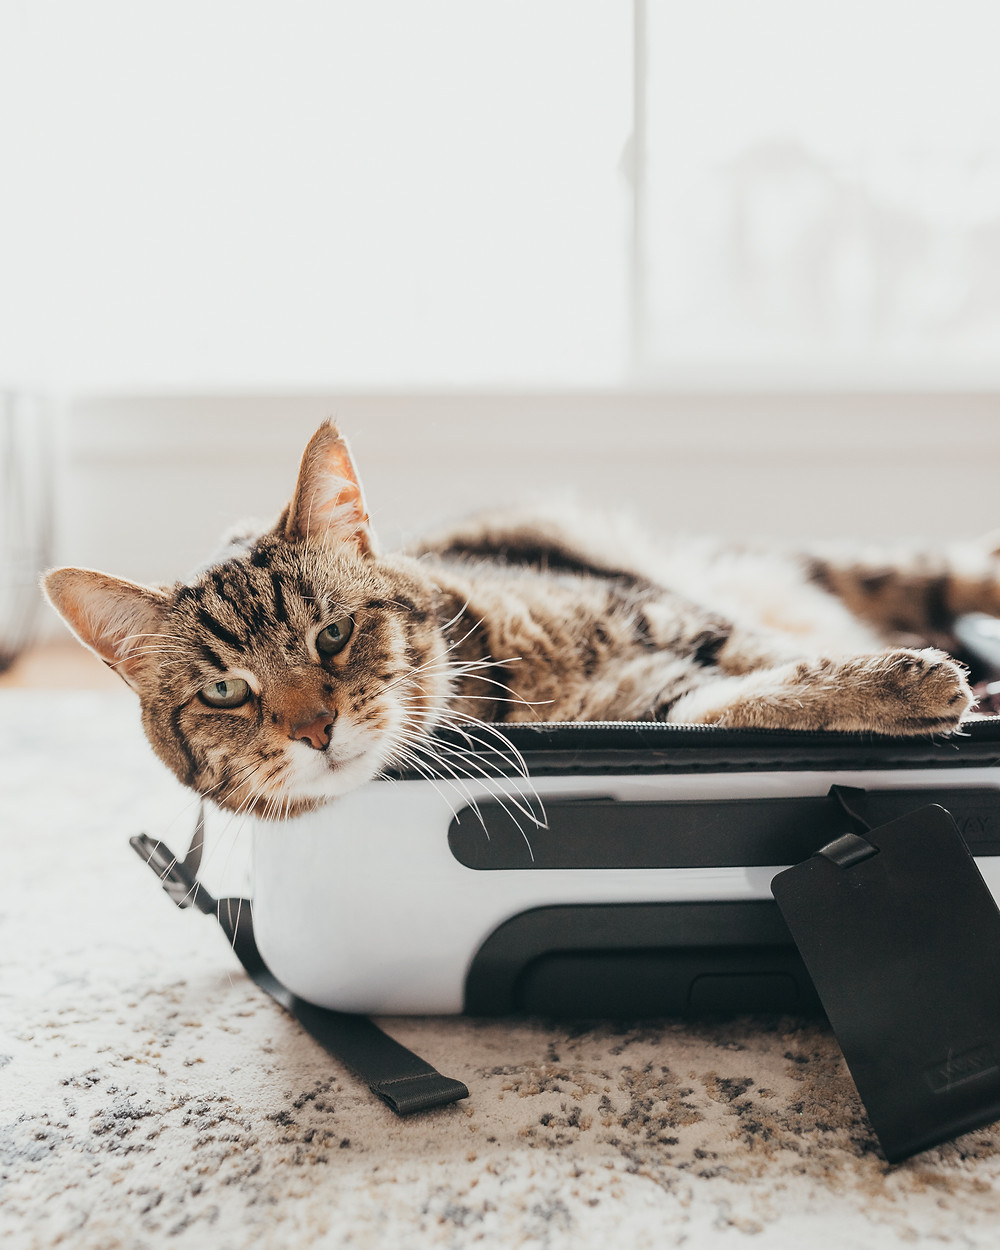 A cute tabby cat laying in a white suitcase.